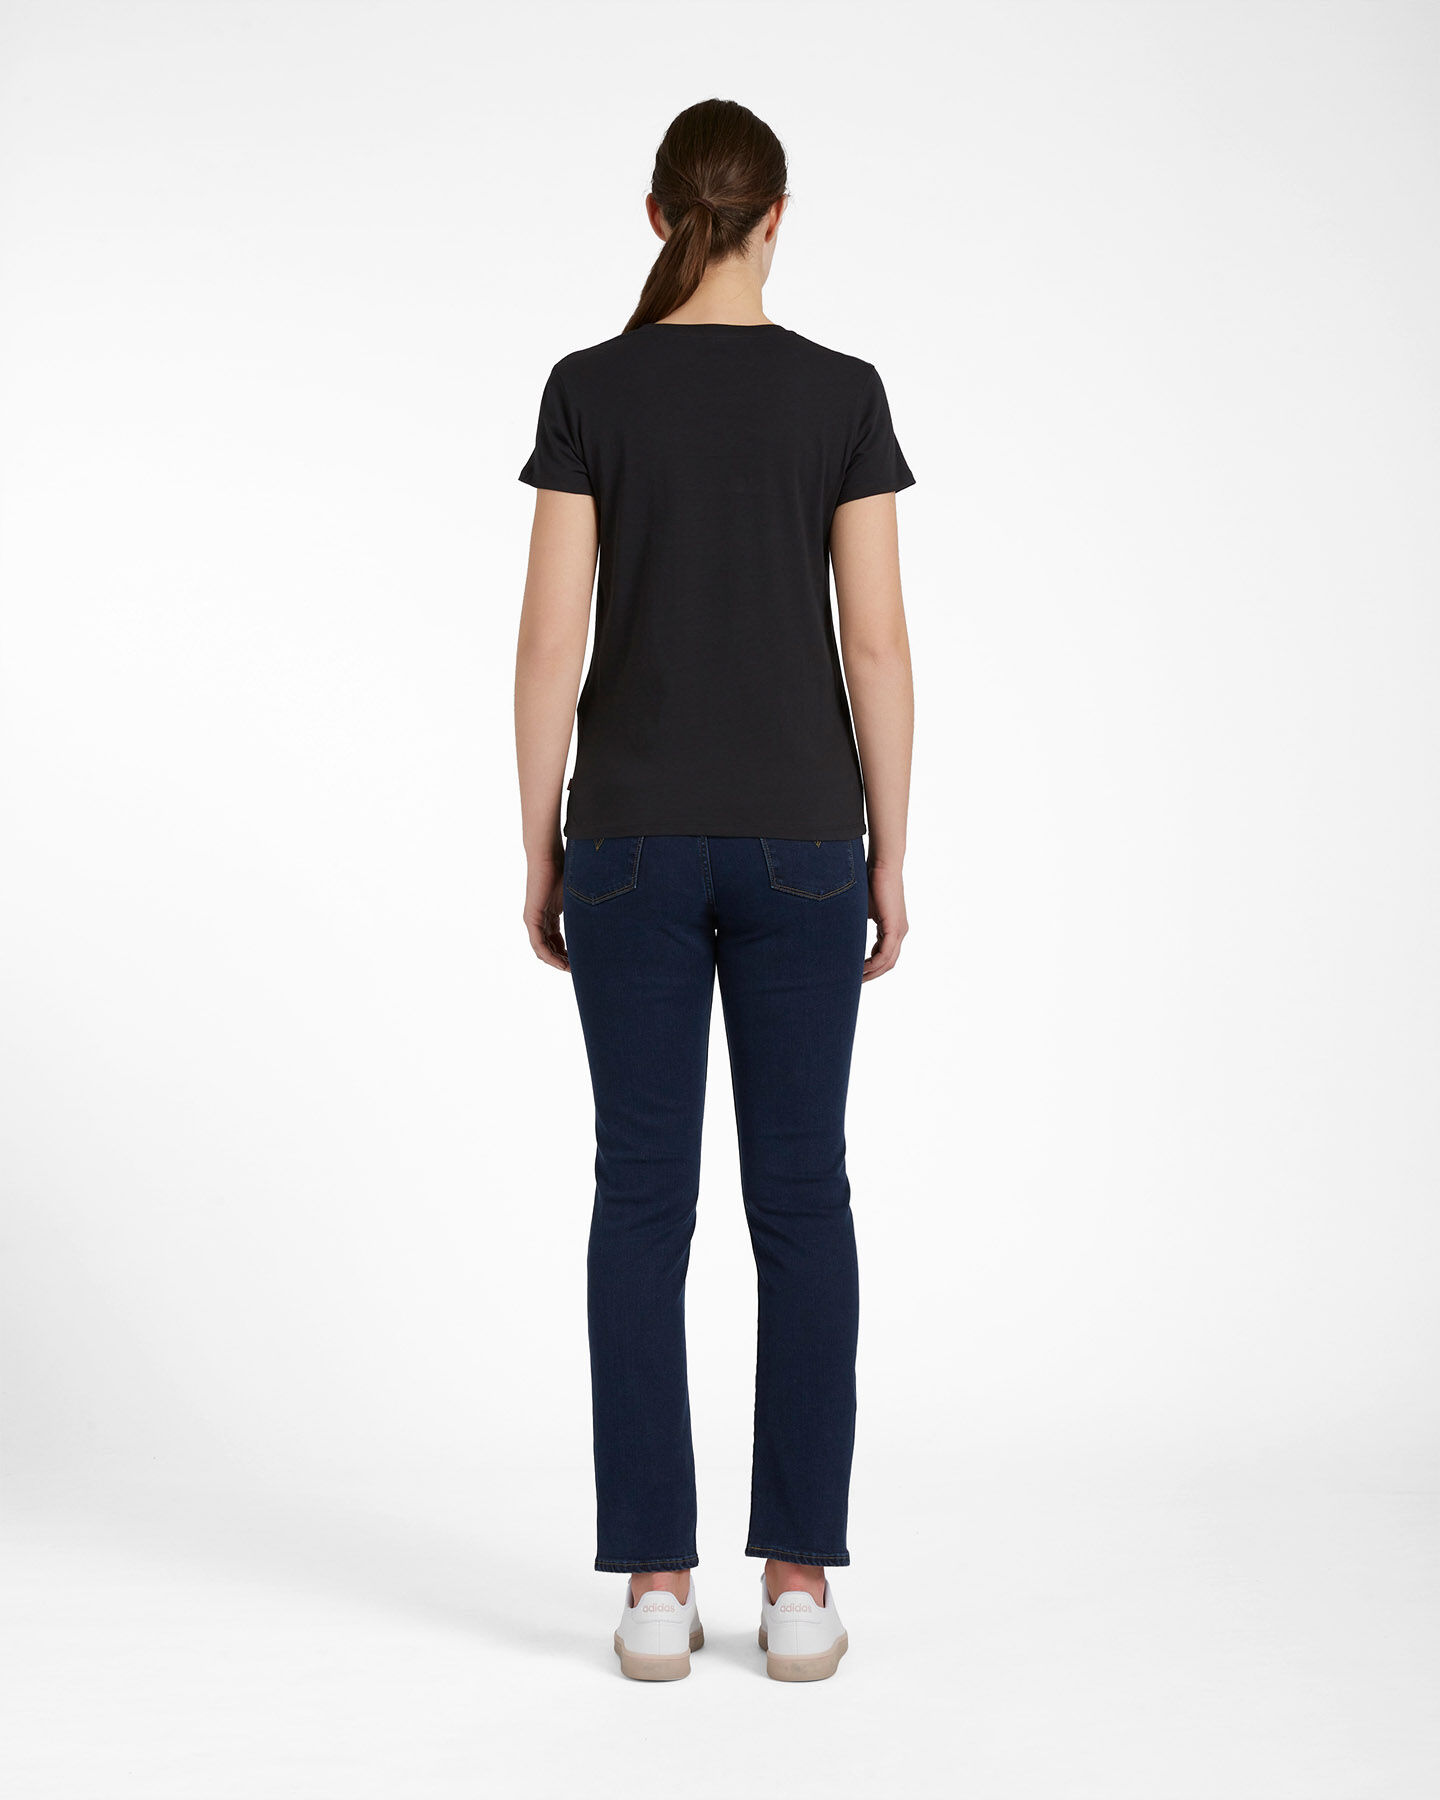 T-Shirt LEVI'S LOGO BATWING ST MOON W S4088774 scatto 2